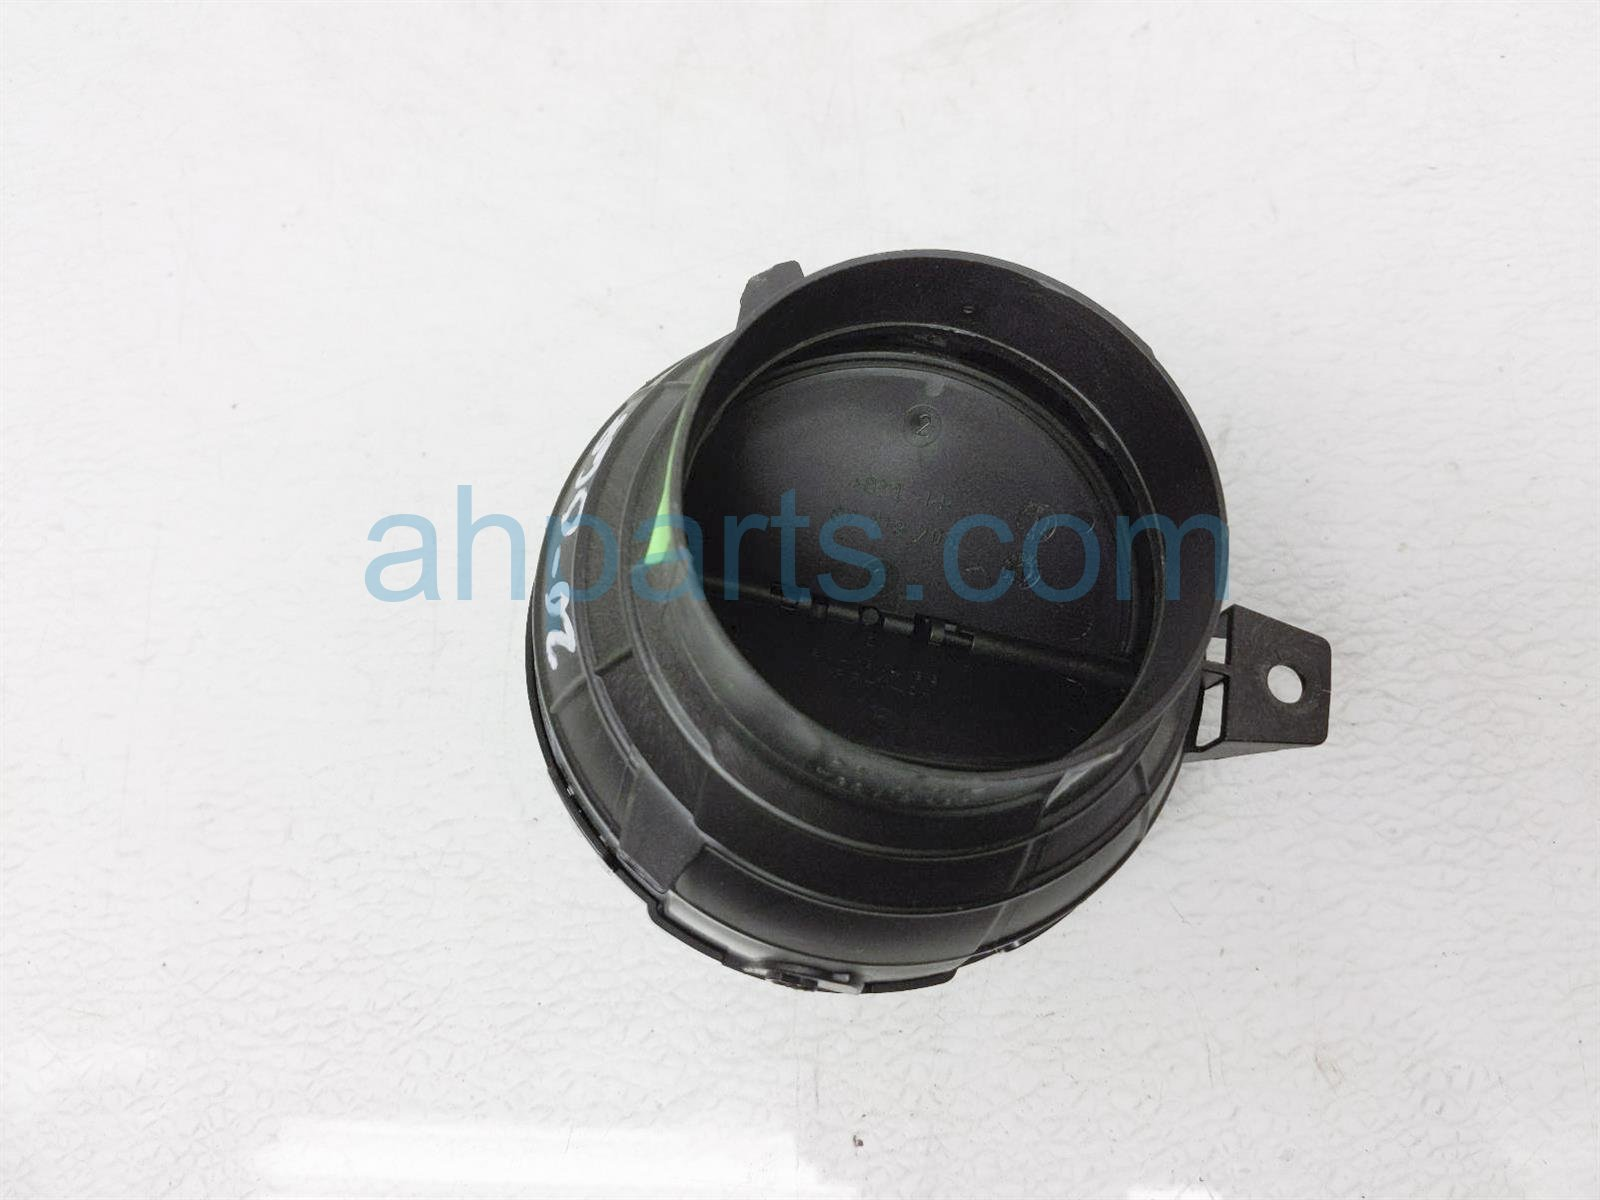 2014 BMW Clubman Minicooper Passenger Dashboard Air Vent Outlet 51 45 2 752 764 Replacement